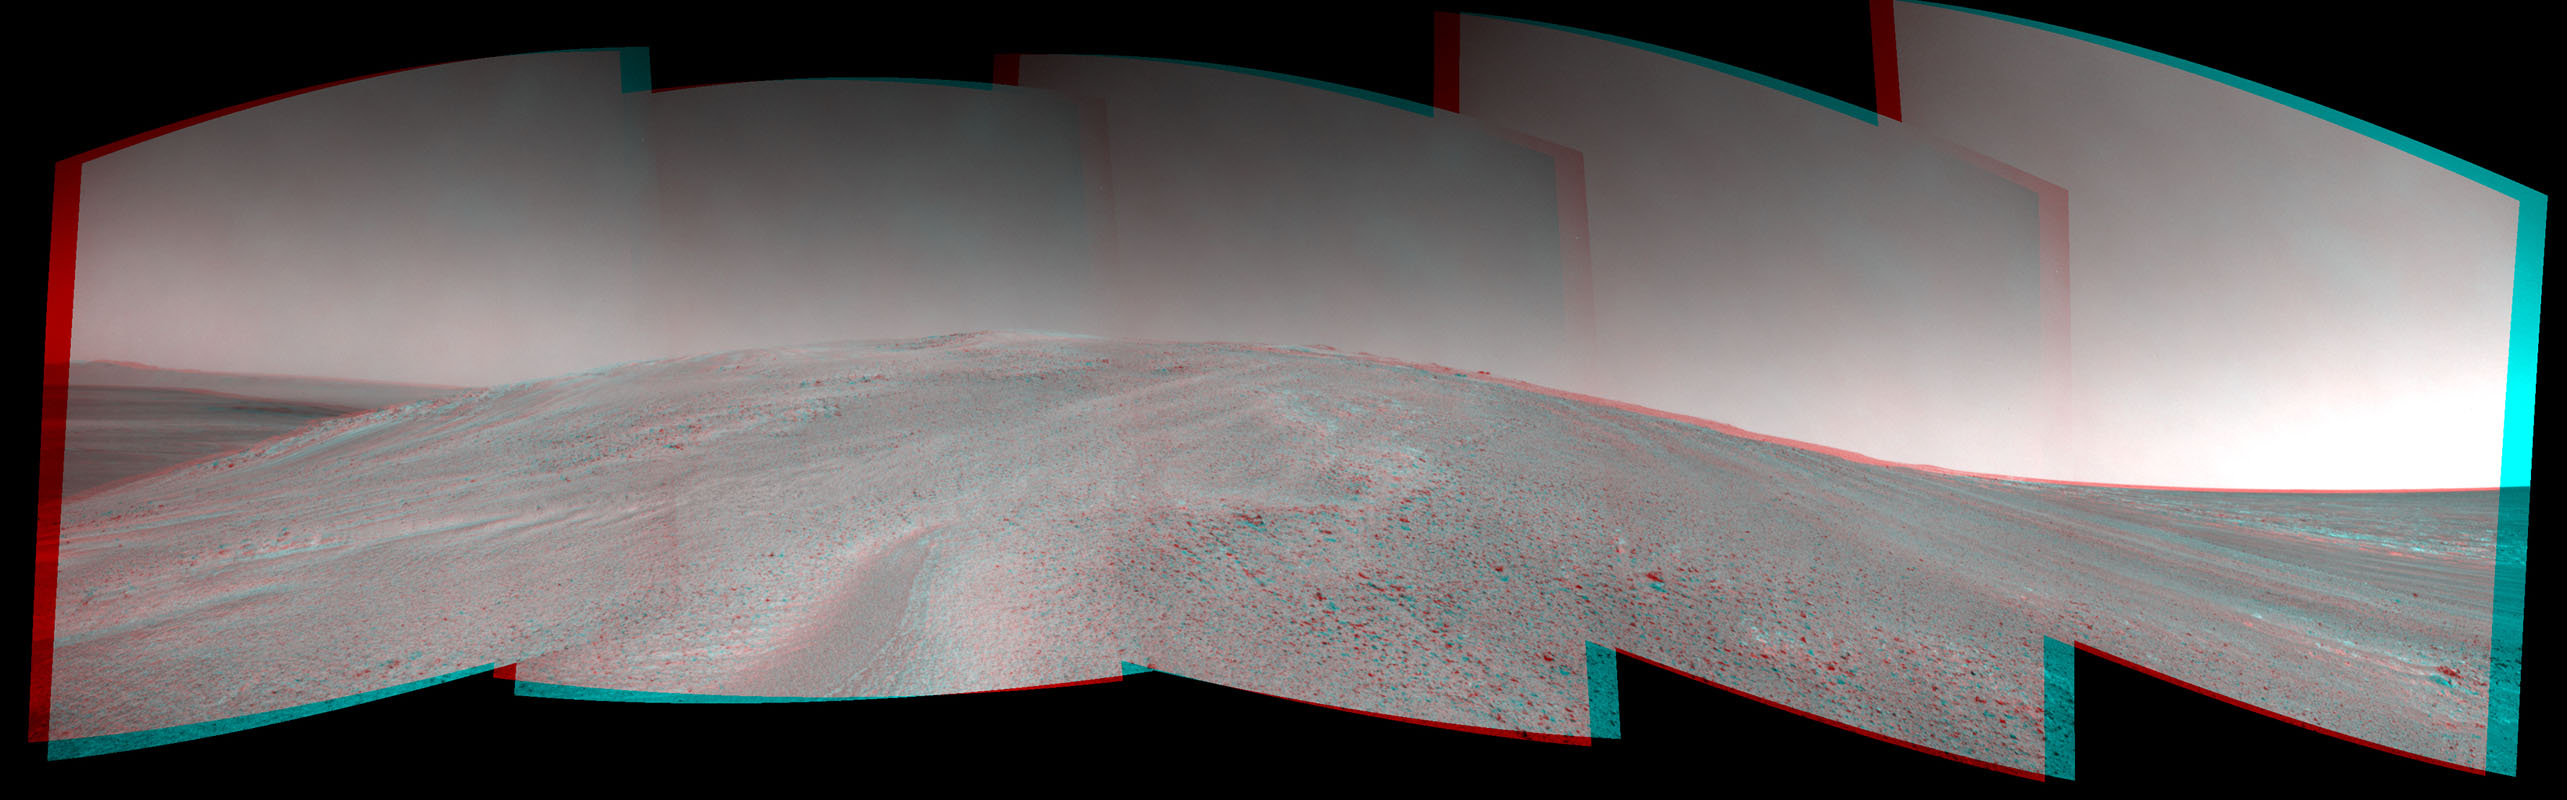 NASA's Mars Exploration Rover Opportunity captured this 3-D view after beginning to ascend the northwestern slope of 'Solander Point' on the western rim of Endeavour Crater.